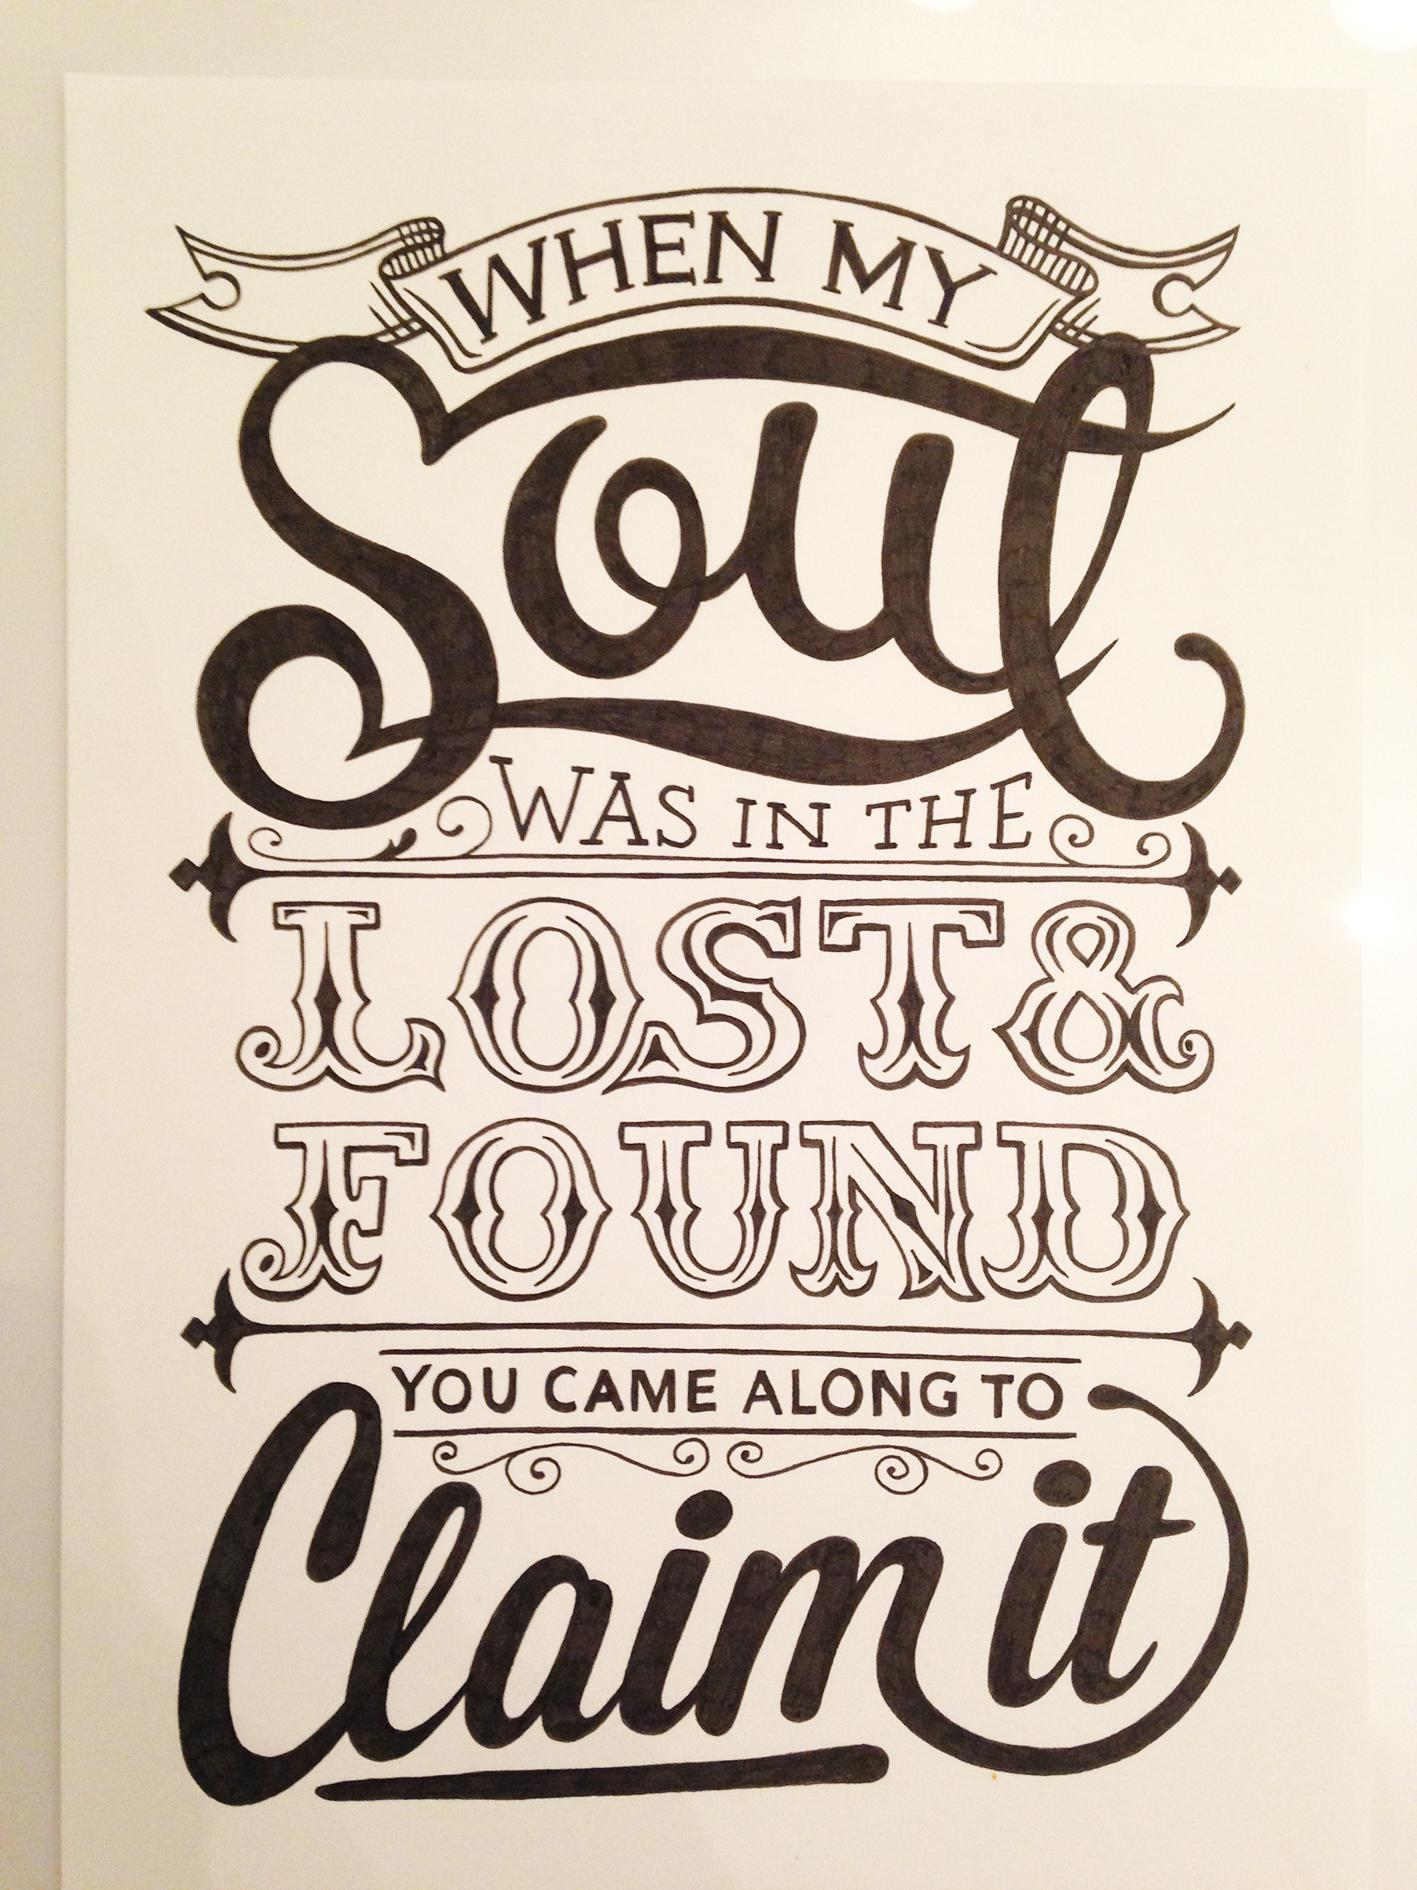 When my soul was in the lost and found... - image 12 - student project